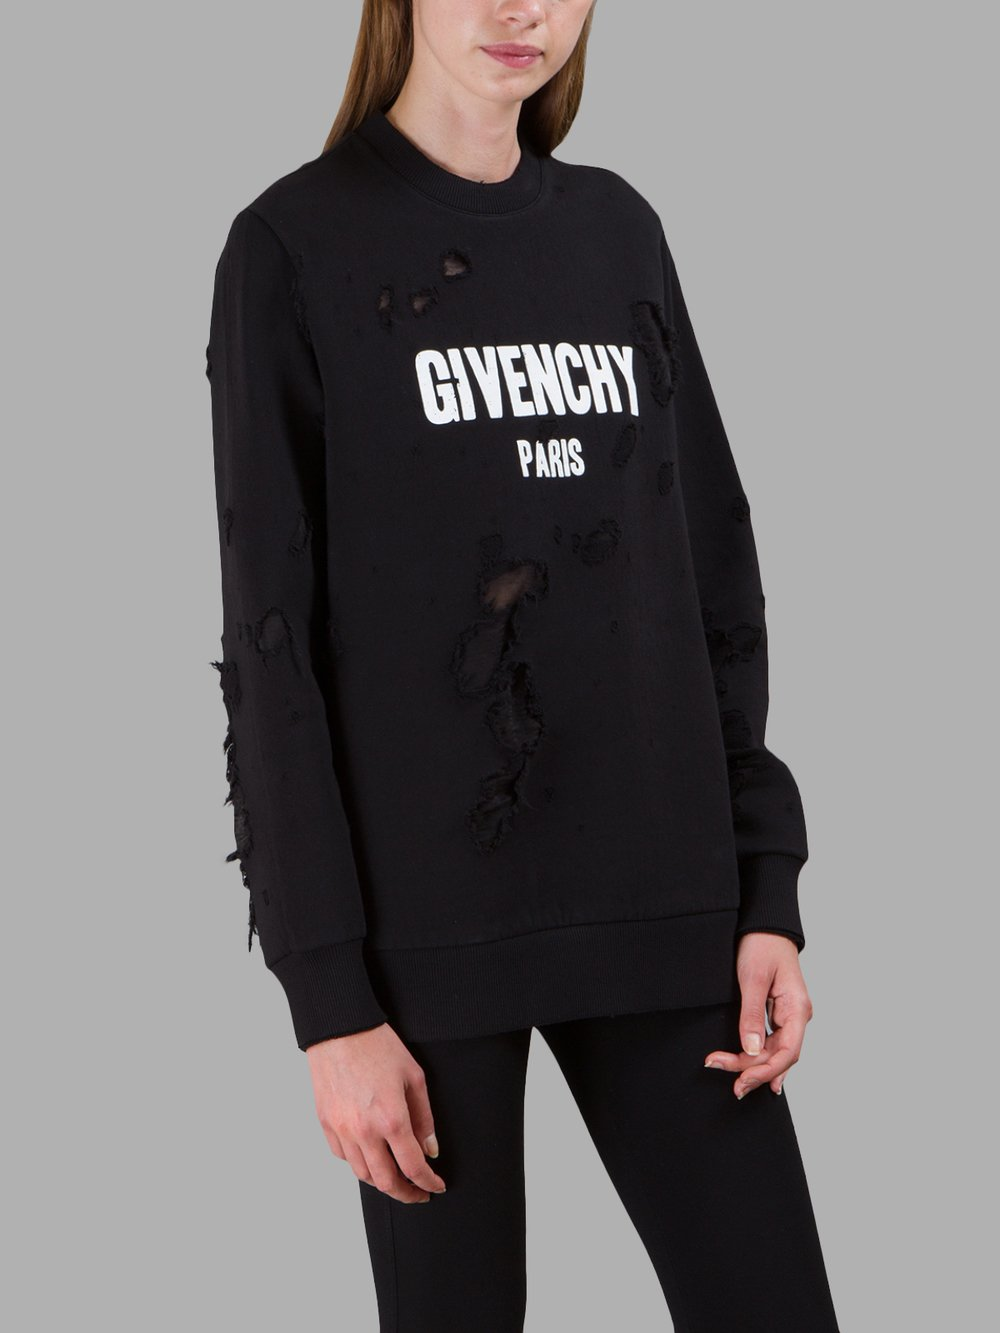 412ba9274a2 Givenchy Sweaters 16P7705485 001